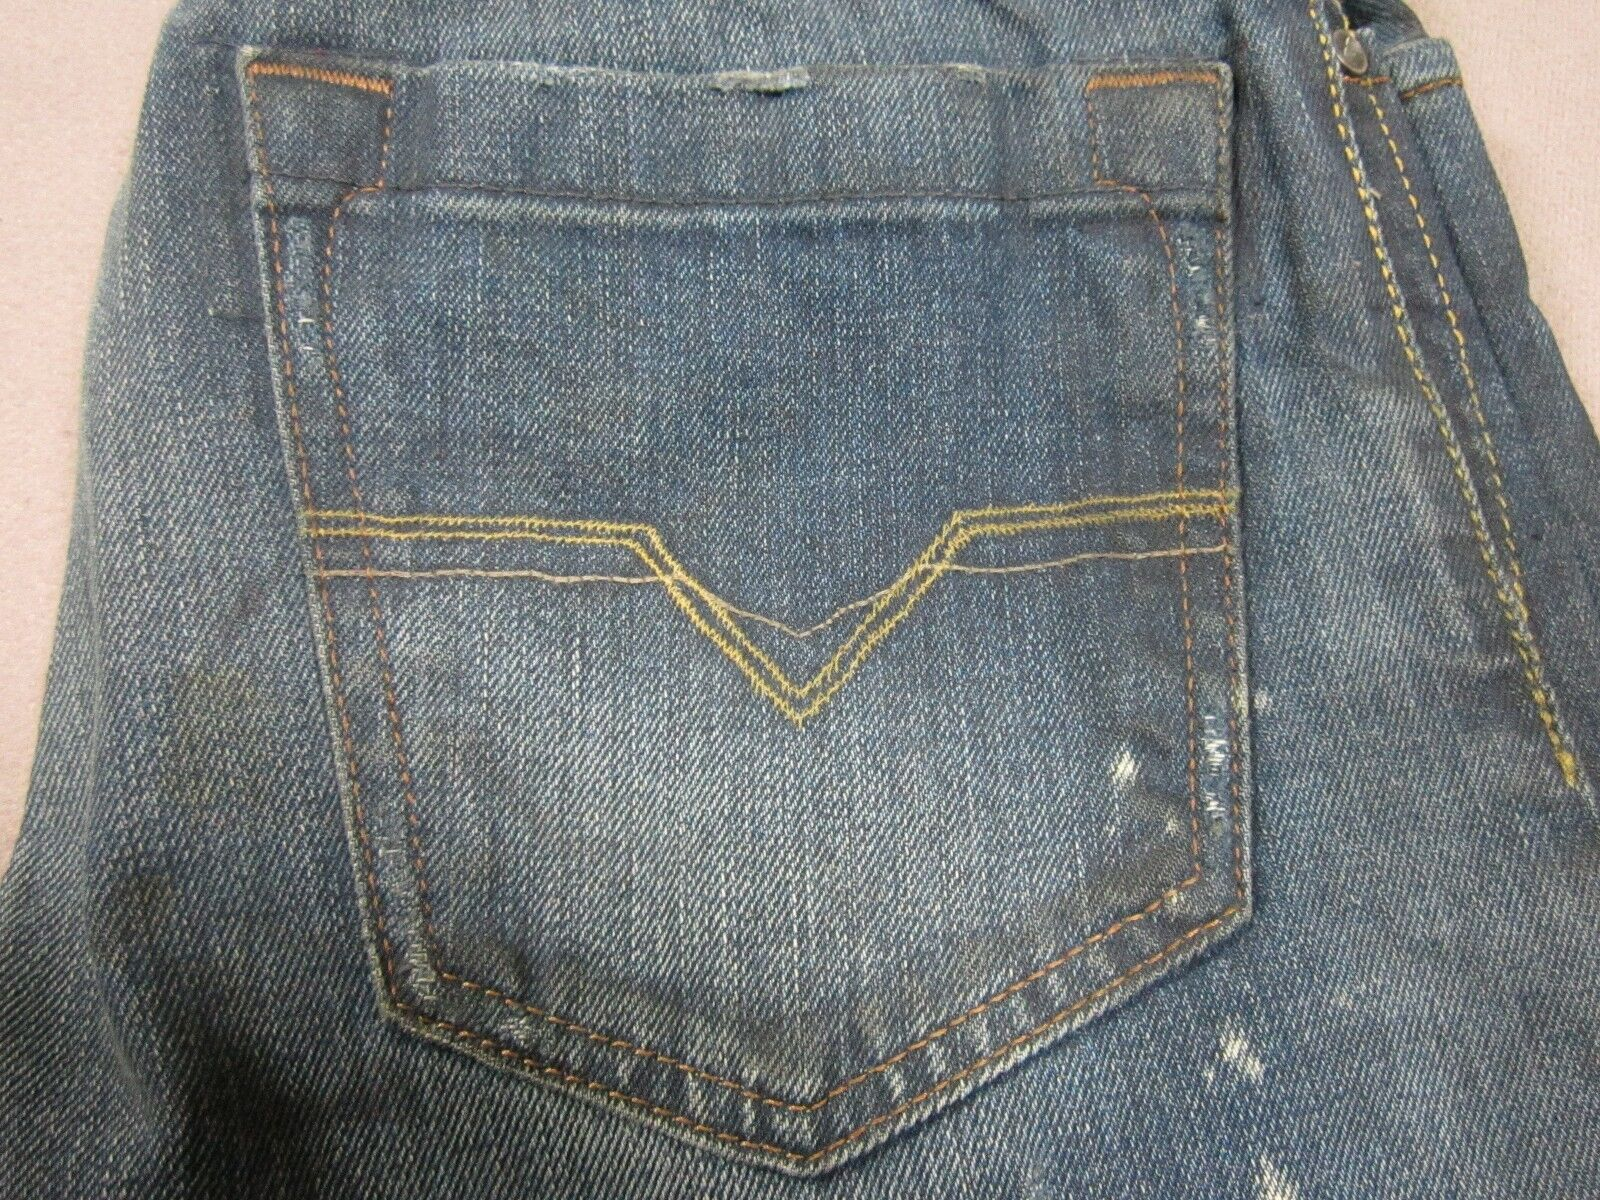 DIESEL SHAZOR 732 MENS CLASSIC SLIM BOOTCUT LEG JEANS SIZE 26 NEW MADE IN ITALY